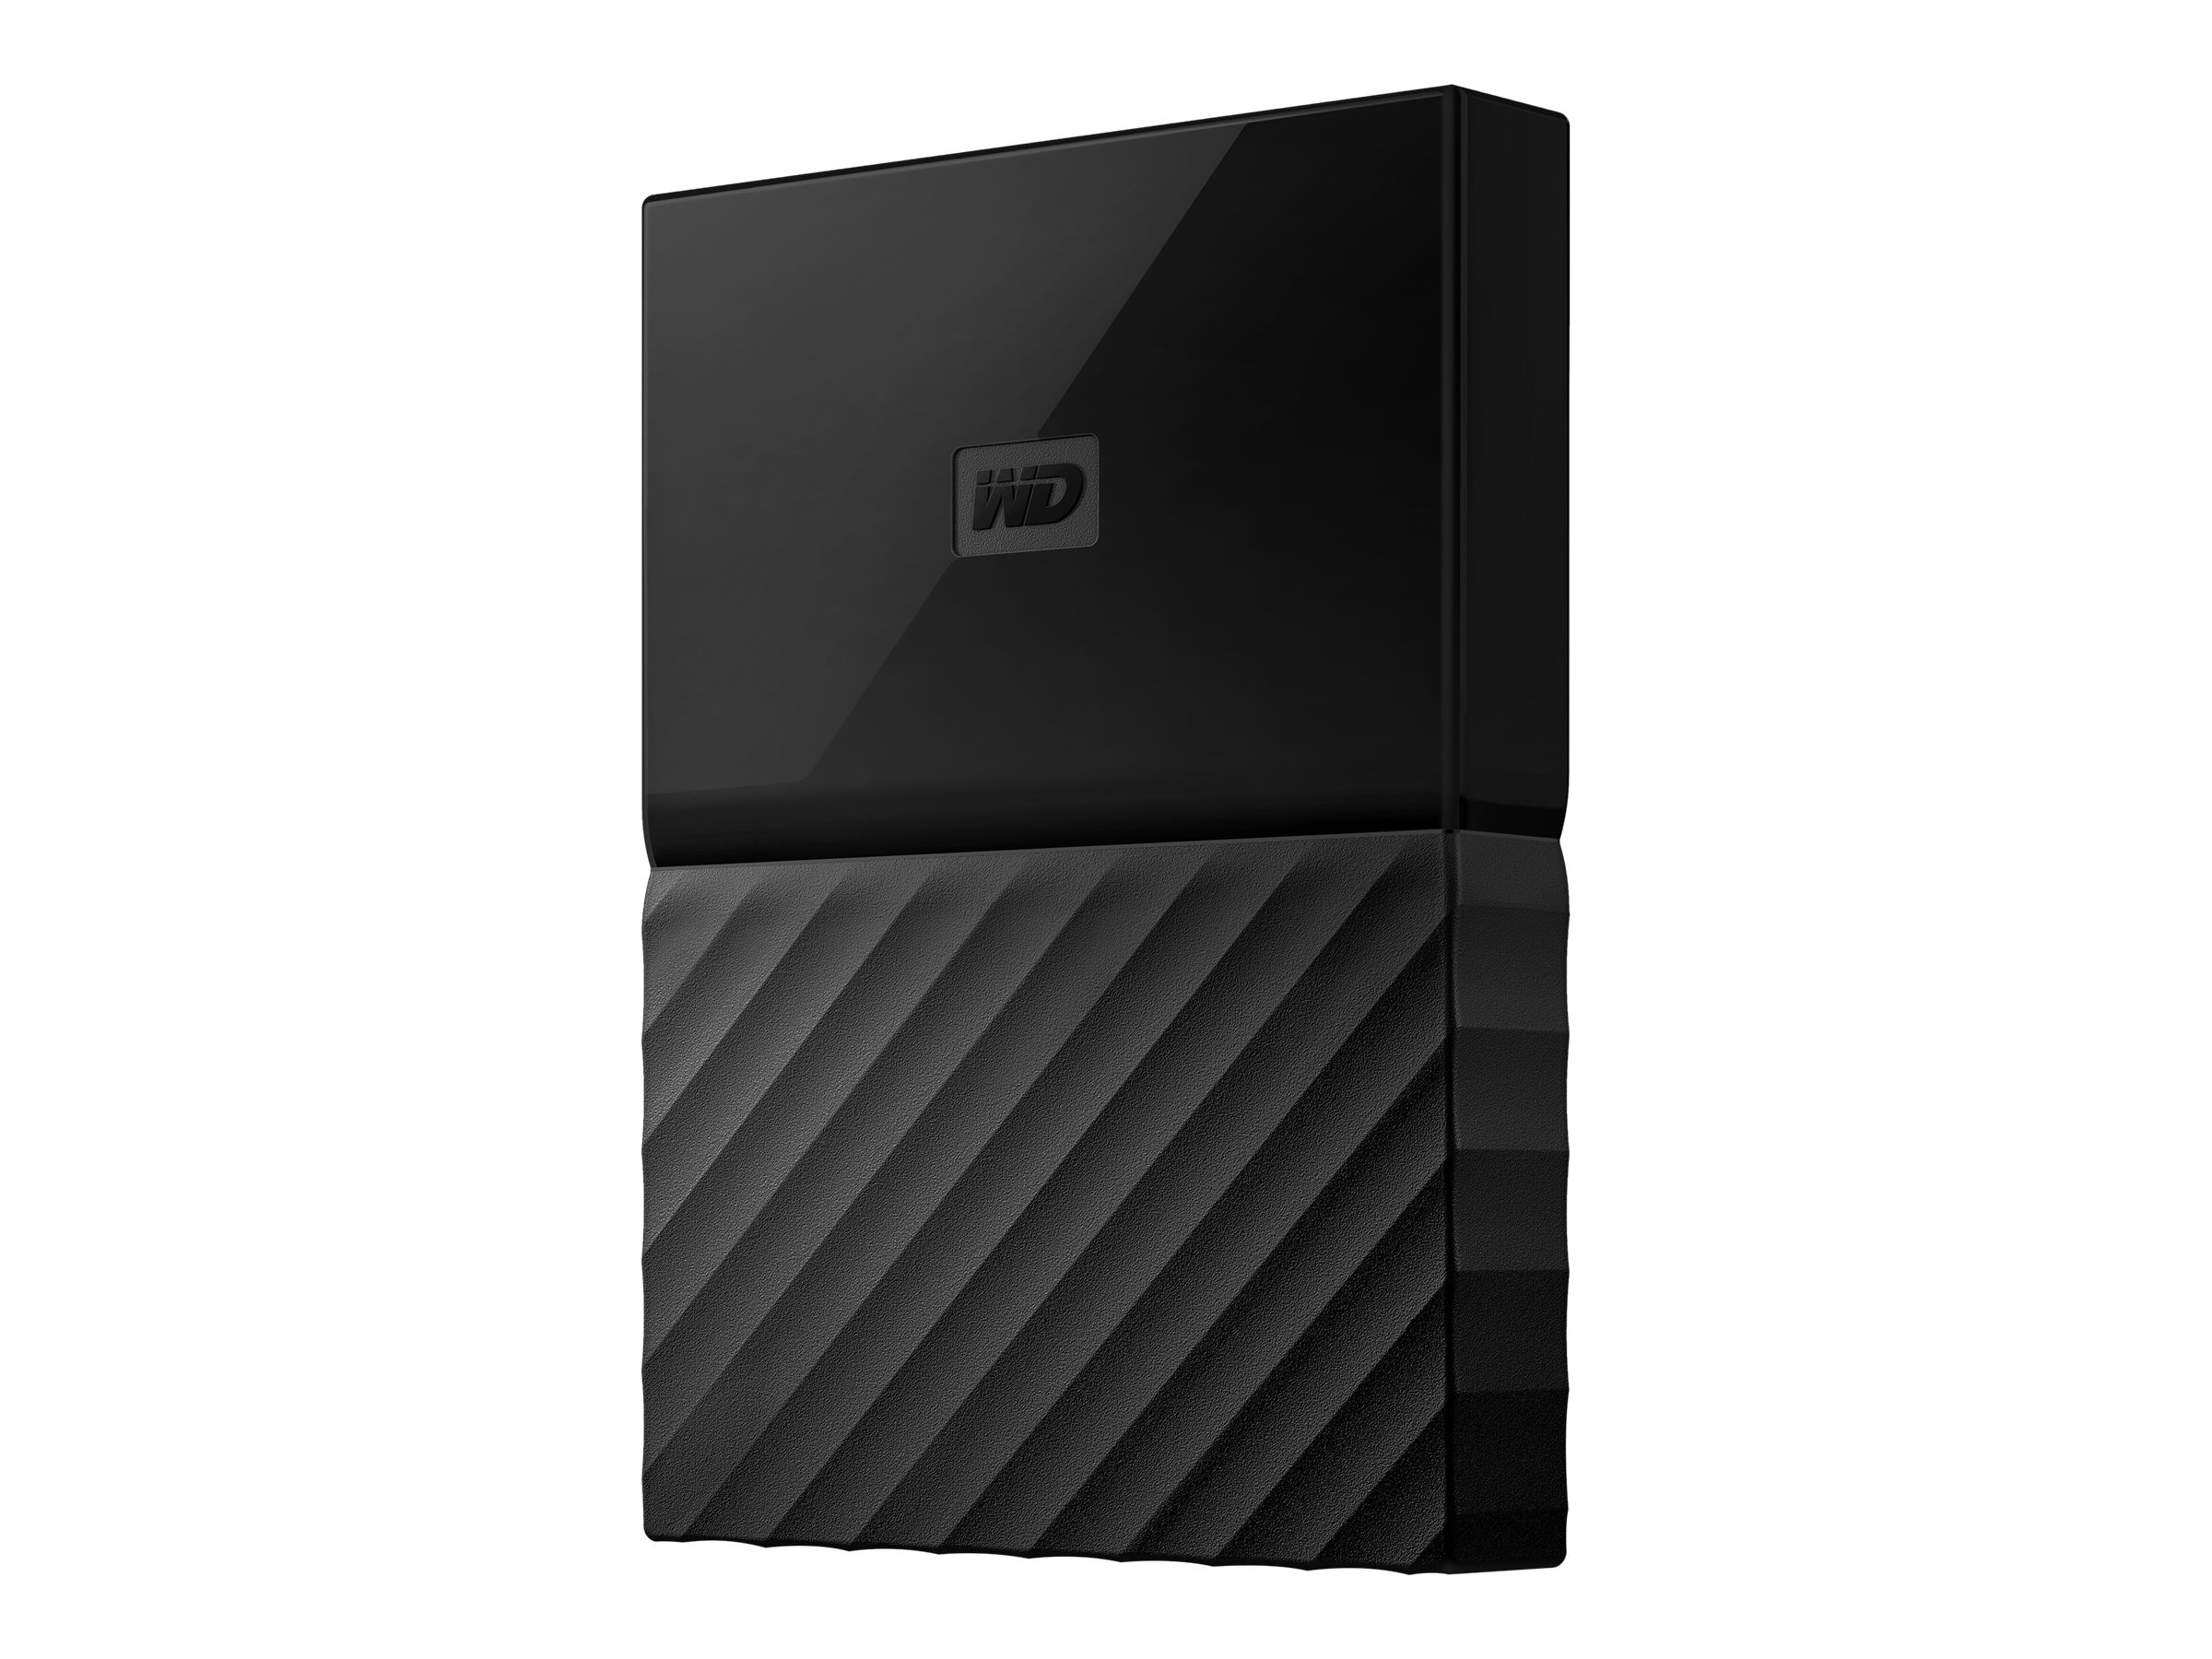 WD 1TB My Passport Ultra, Black, WDBYNN0010BBK-WESN